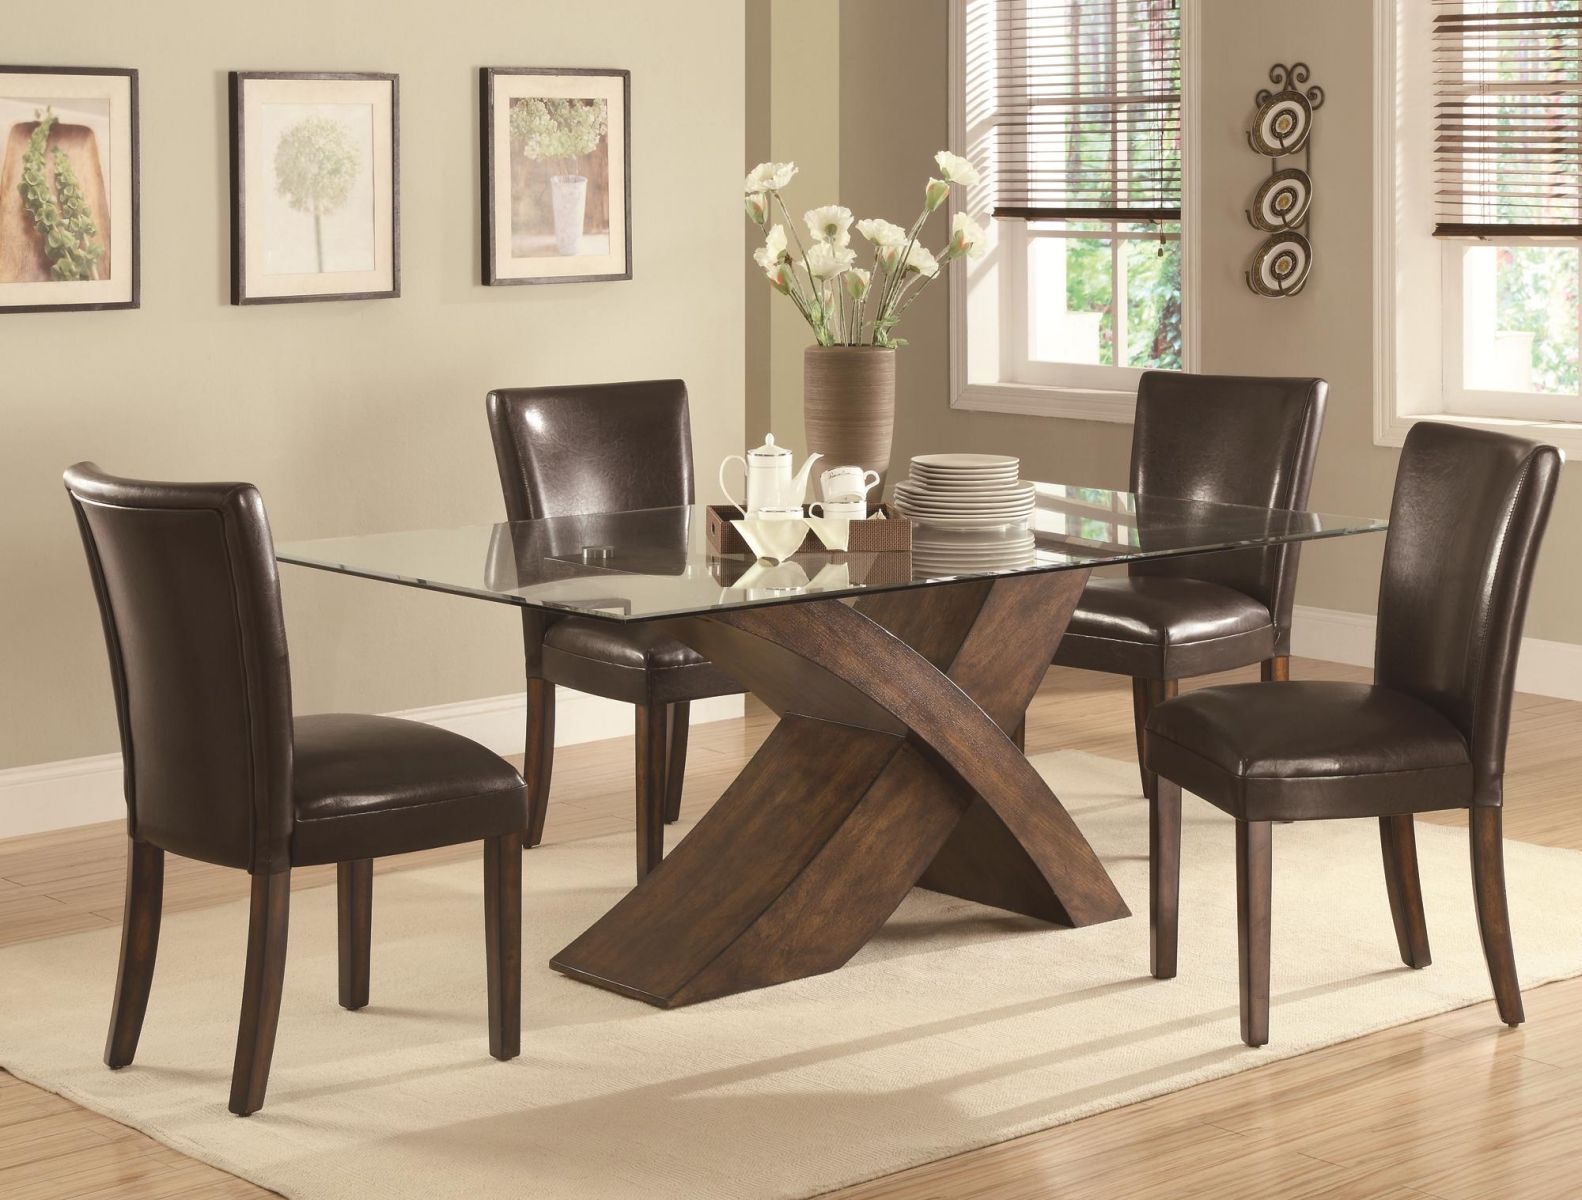 Attirant Unique Dinette Long Island New York   Coaster Dining Room Set Price Upon  Request Call (